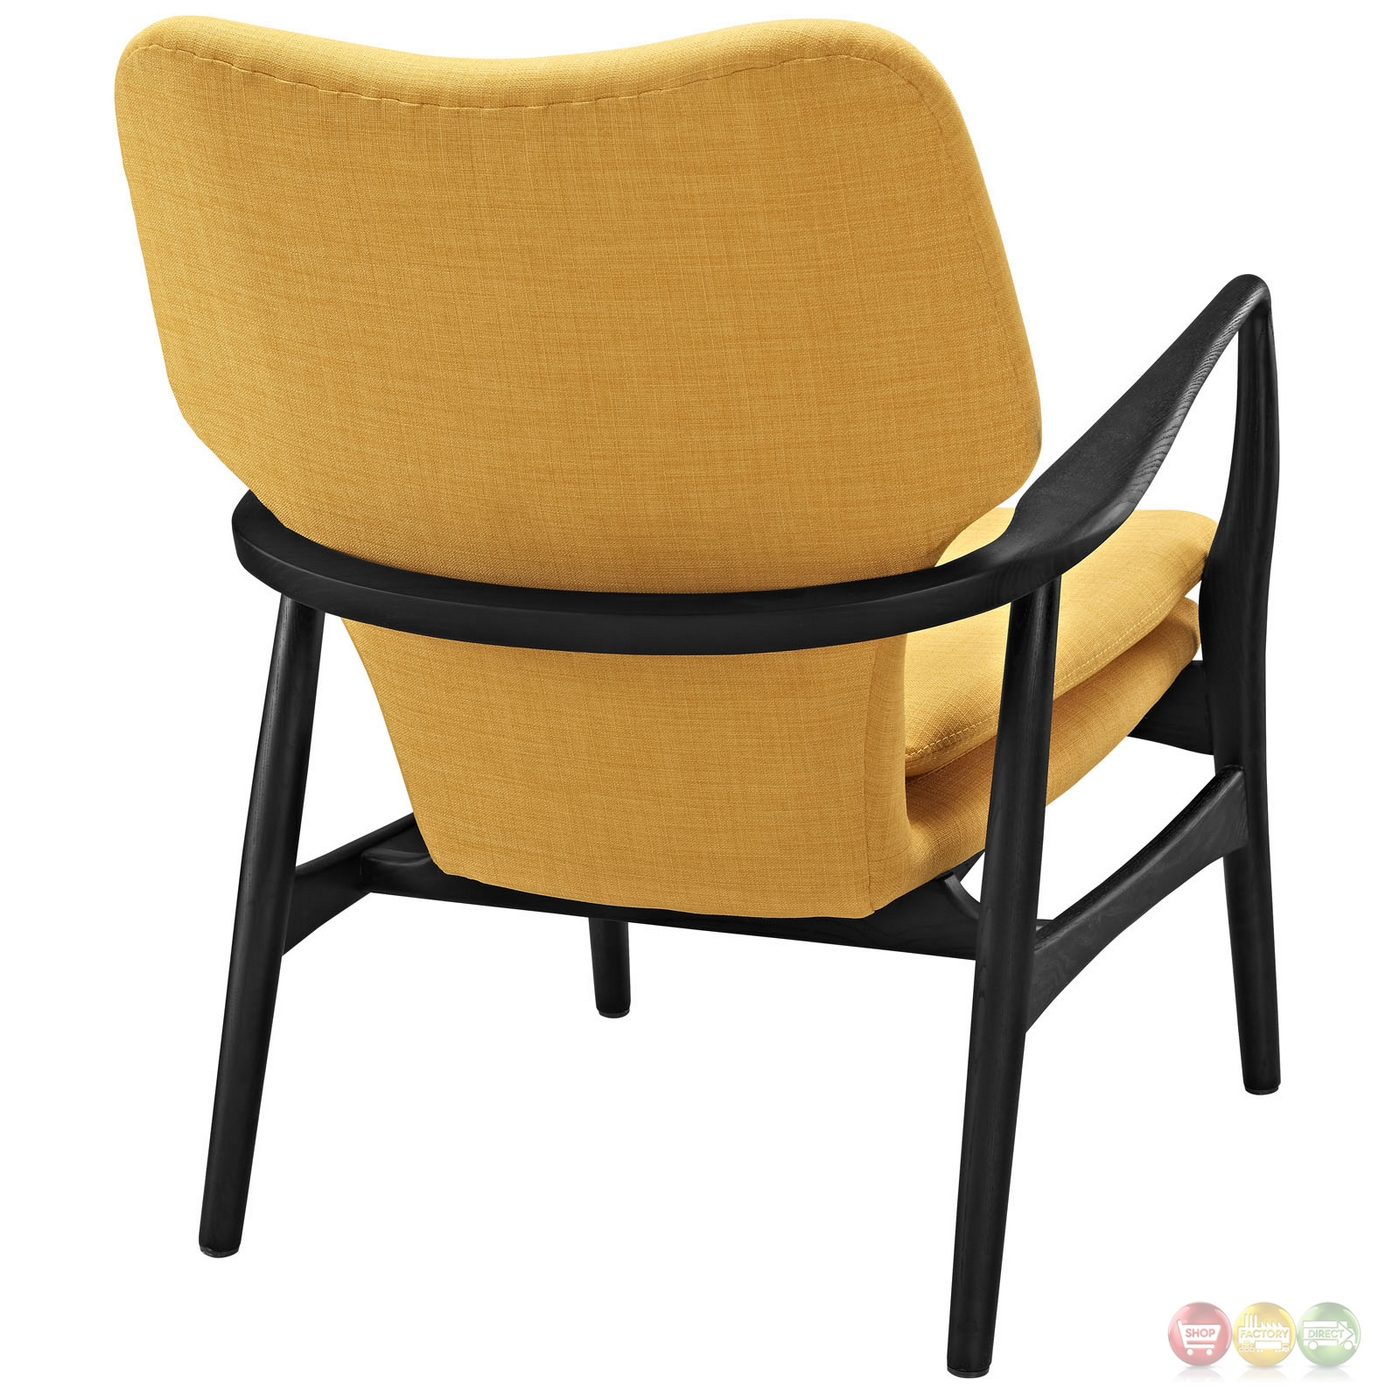 yellow upholstered accent chair soccer with canopy heed modern lounge button accents